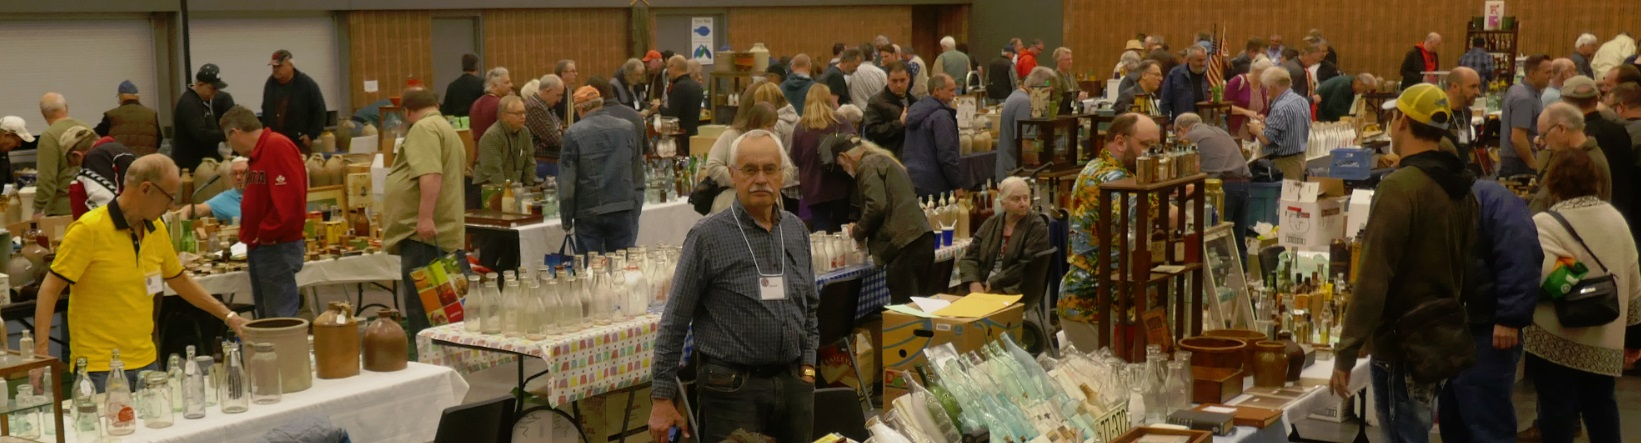 a wide shot of the 2018 Toronto bottle show